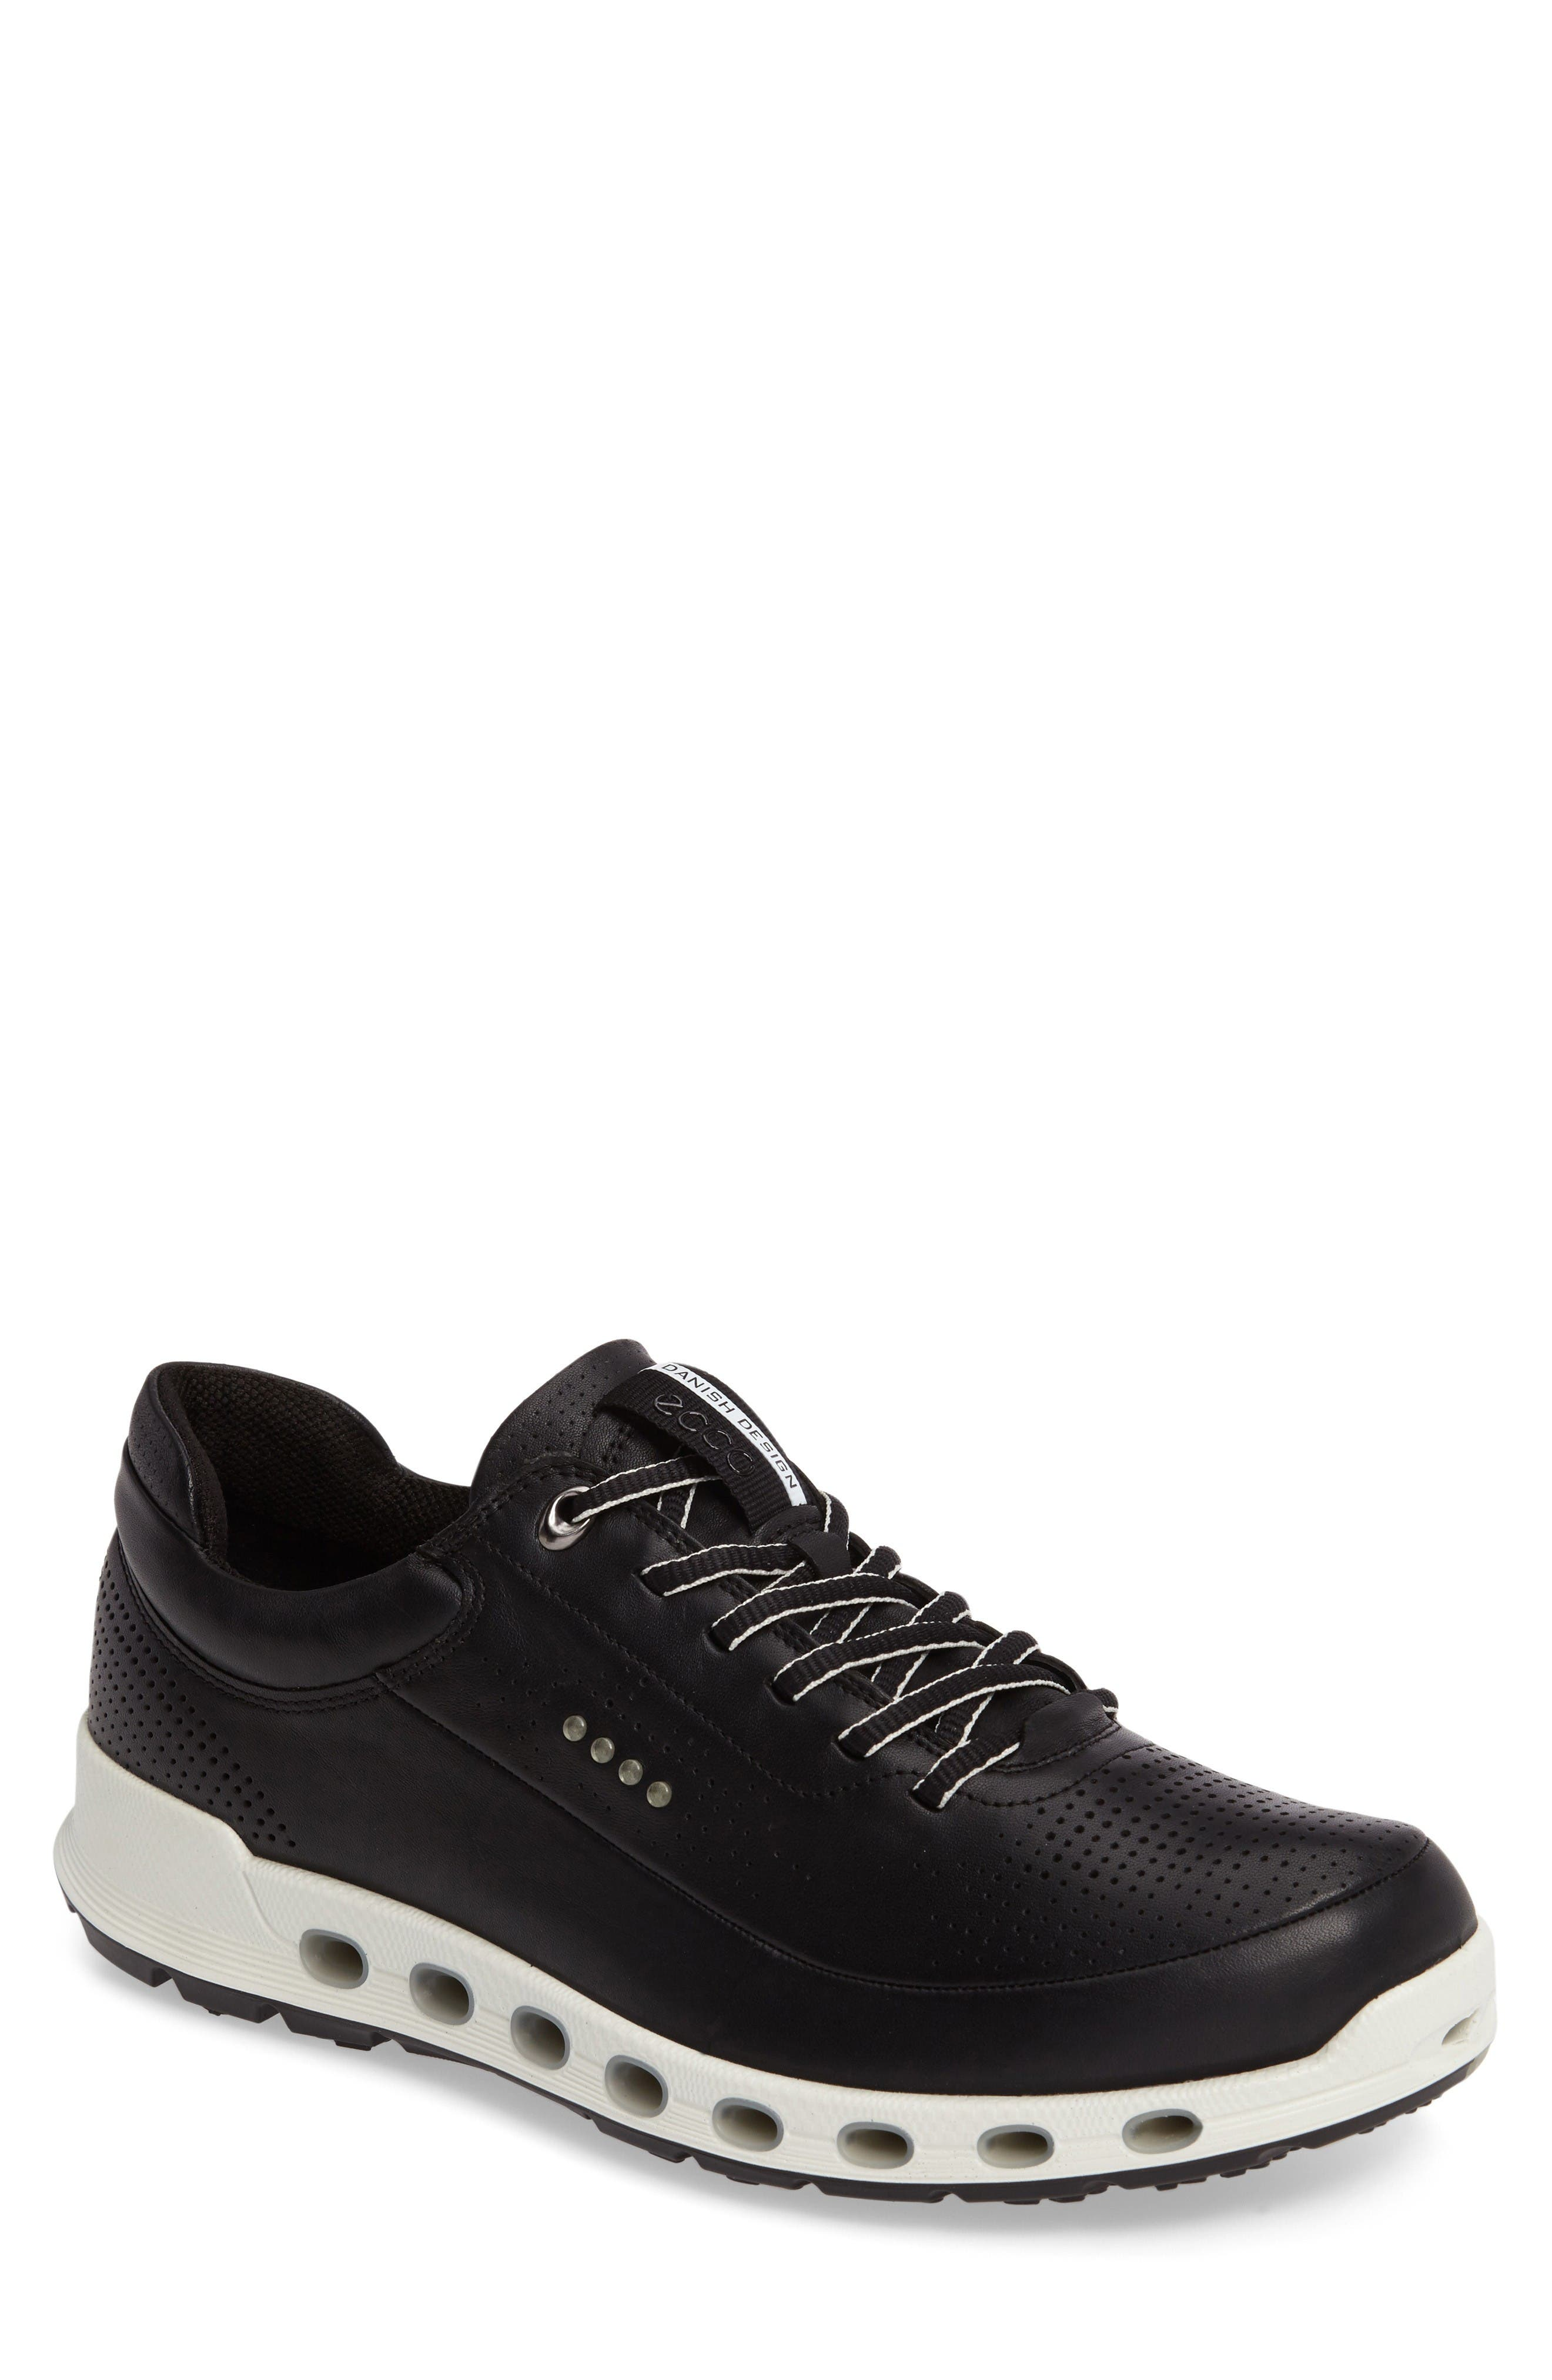 Main Image - ECCO Cool 2.0 Leather GTX Sneaker